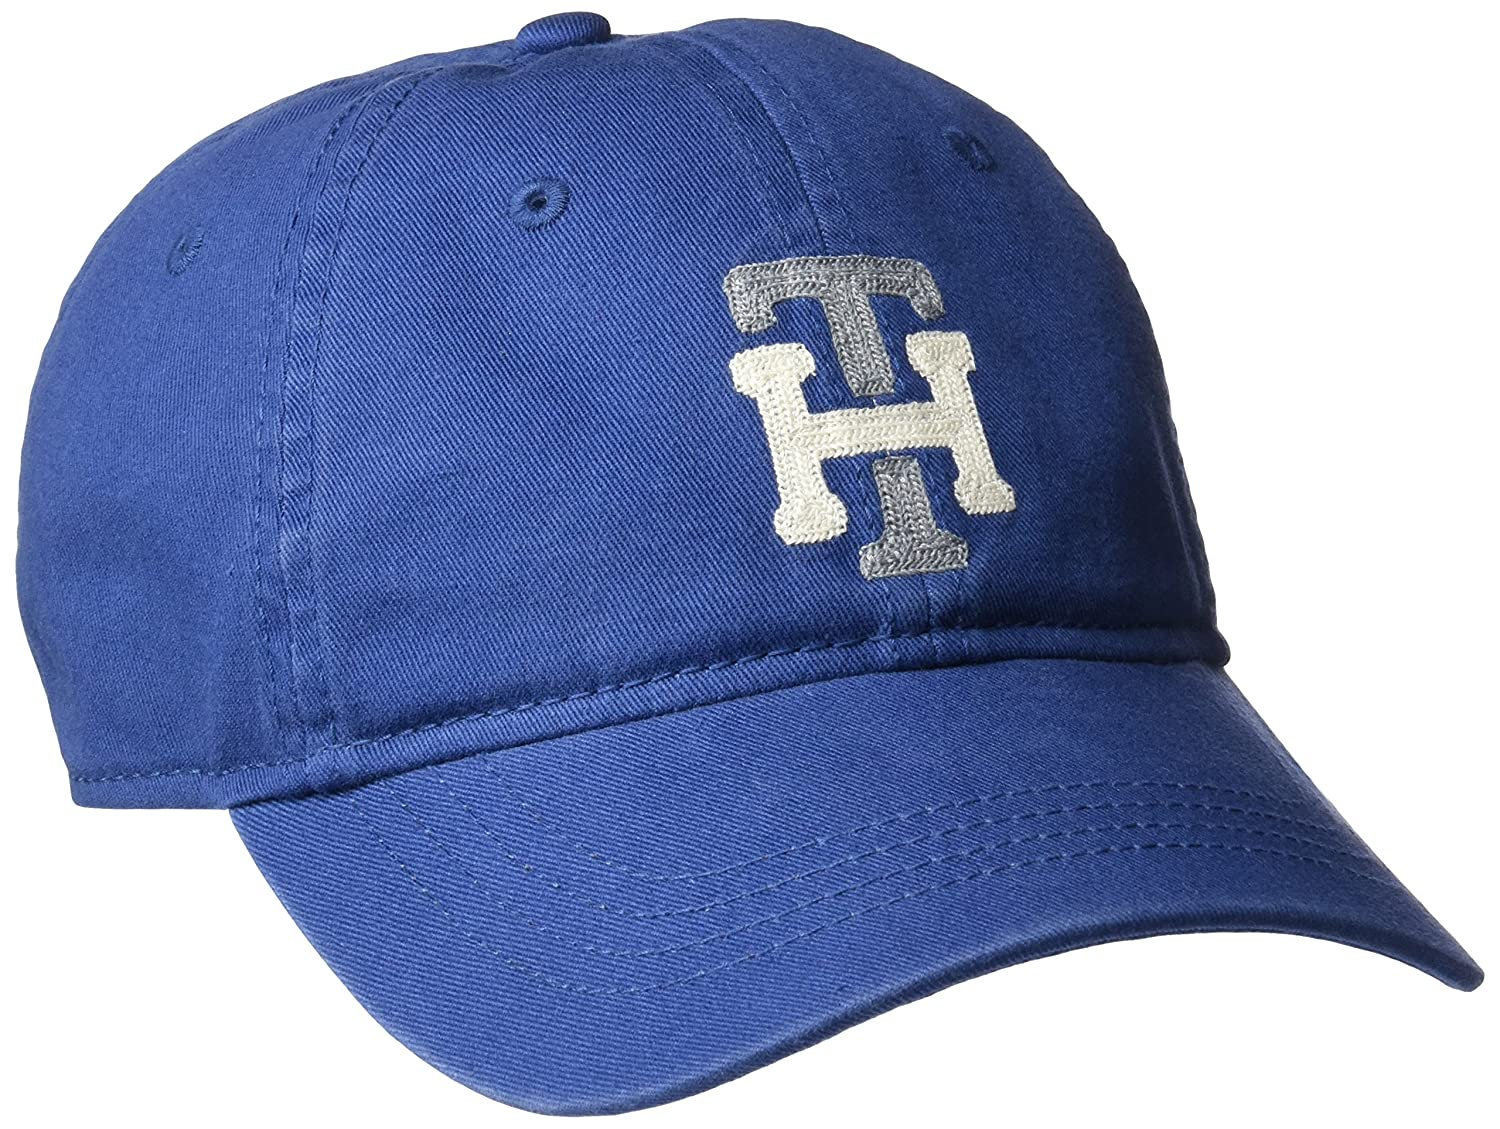 Tommy Hilfiger Mens Water Dad Baseball Cap Classic Blue One Size Tommy Hilfiger Headwear Child Code 6939494